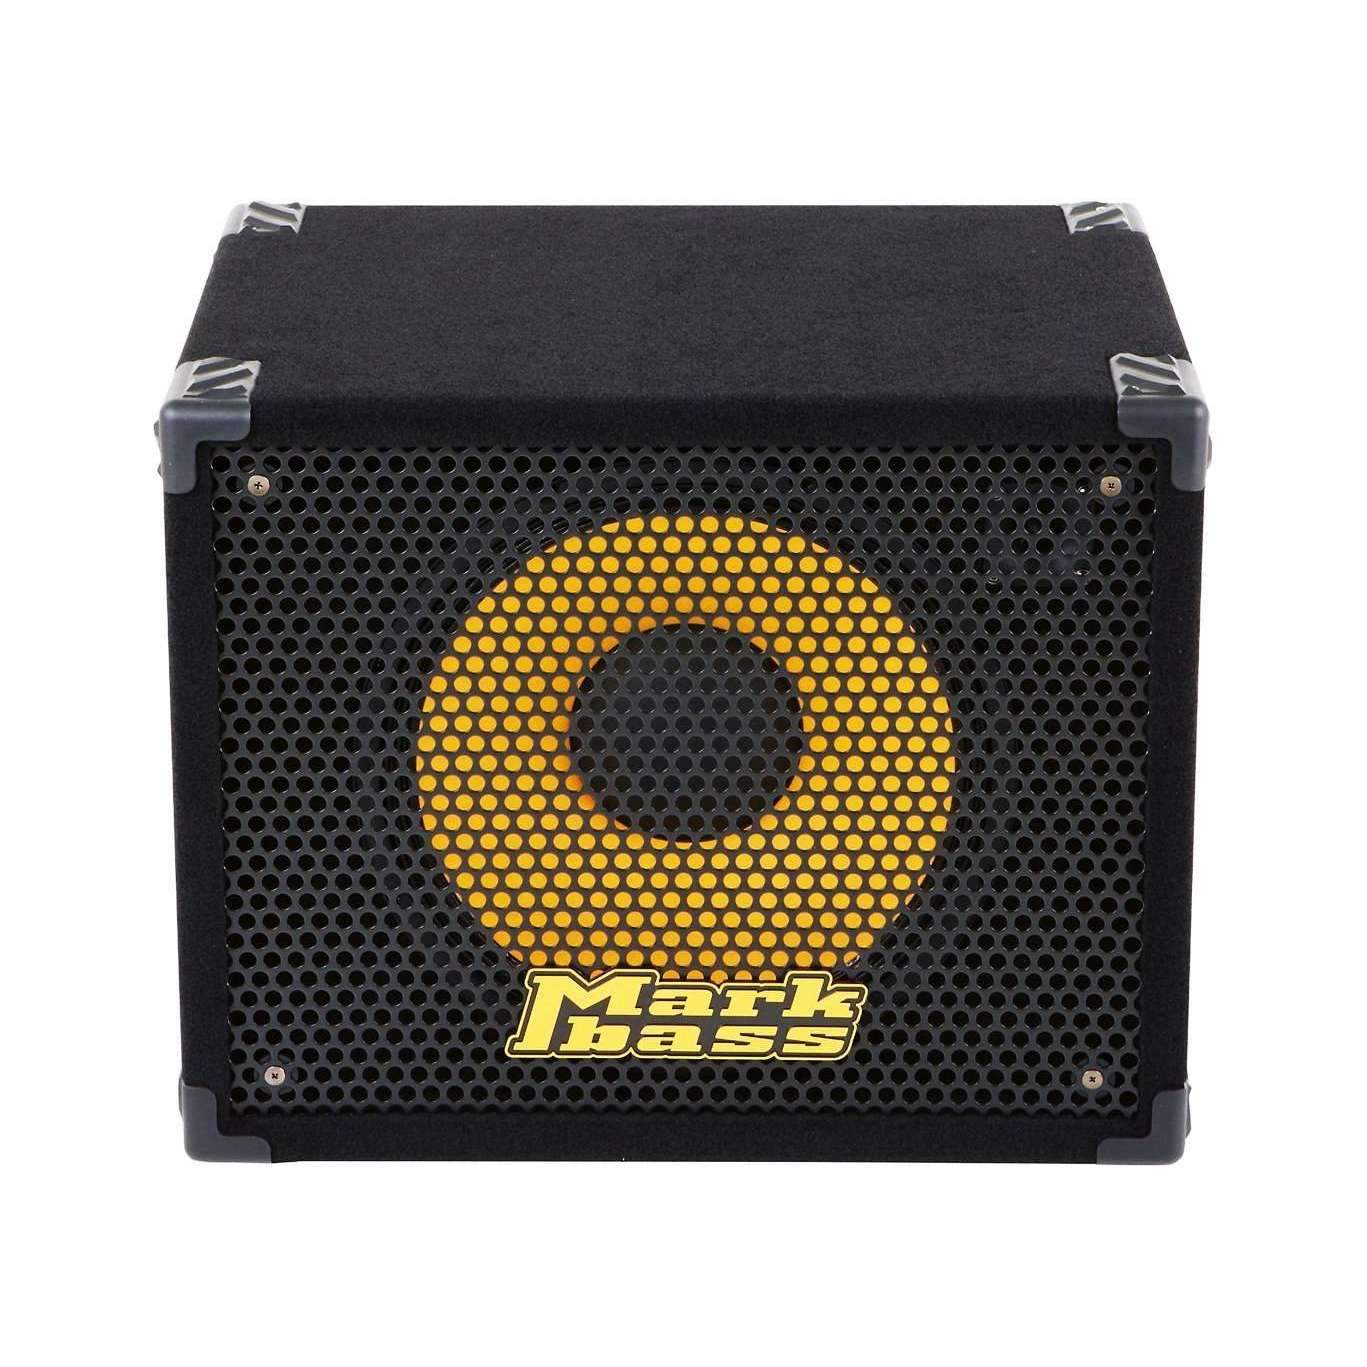 Industrie Music,Markbass Traveler 151P Rear-Ported Compact 1x15 Bass Speaker Cabinet 8 Ohm